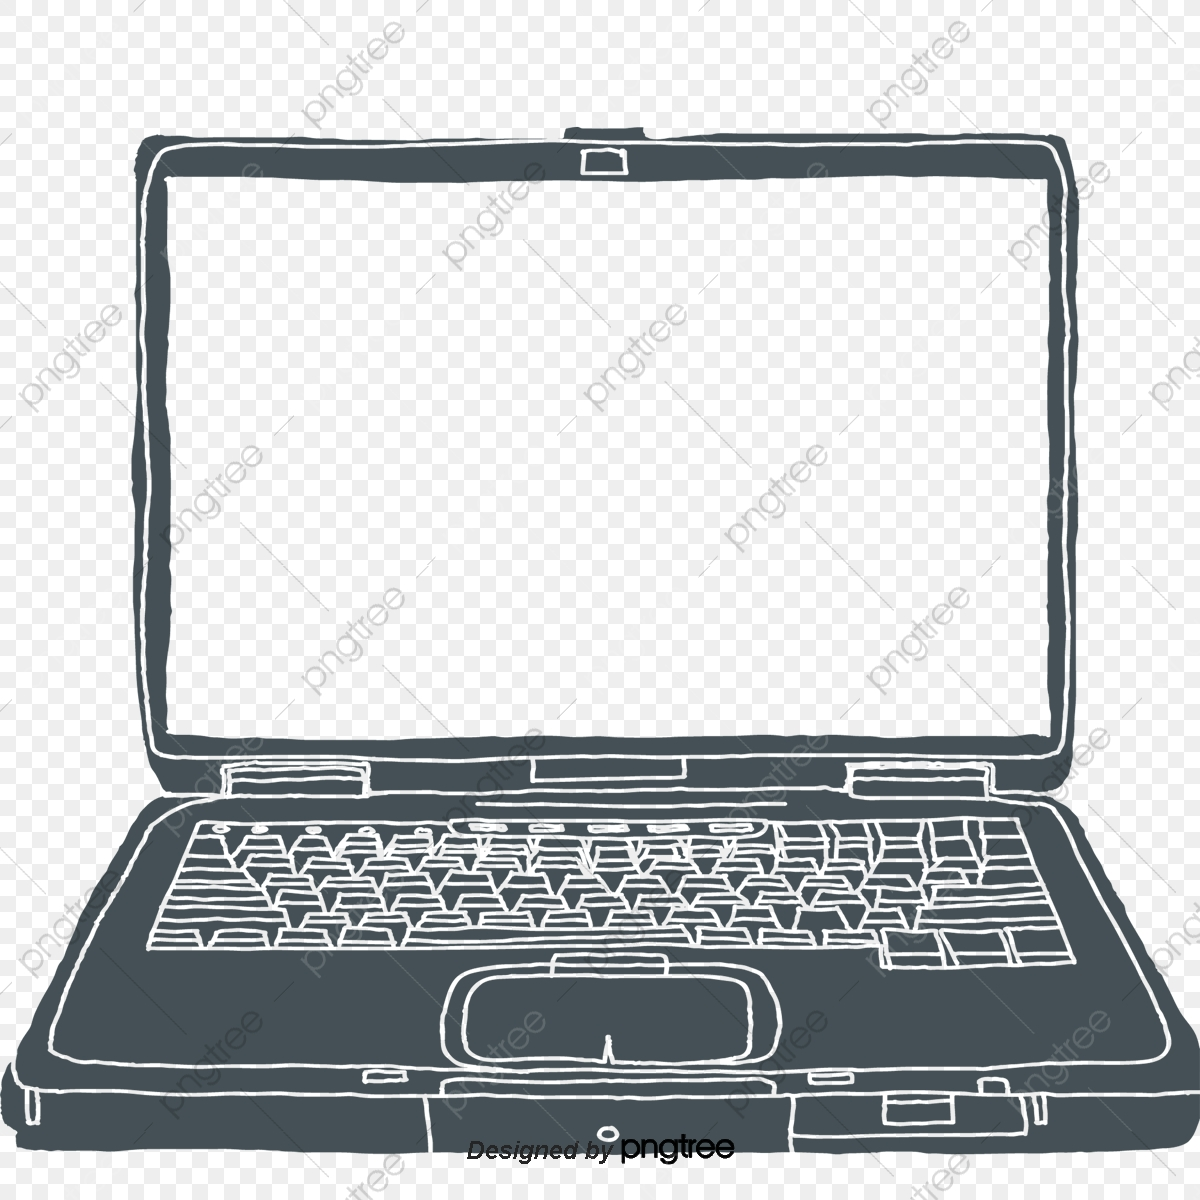 hight resolution of commercial use resource upgrade to premium plan and get license authorization upgradenow laptop laptop clipart